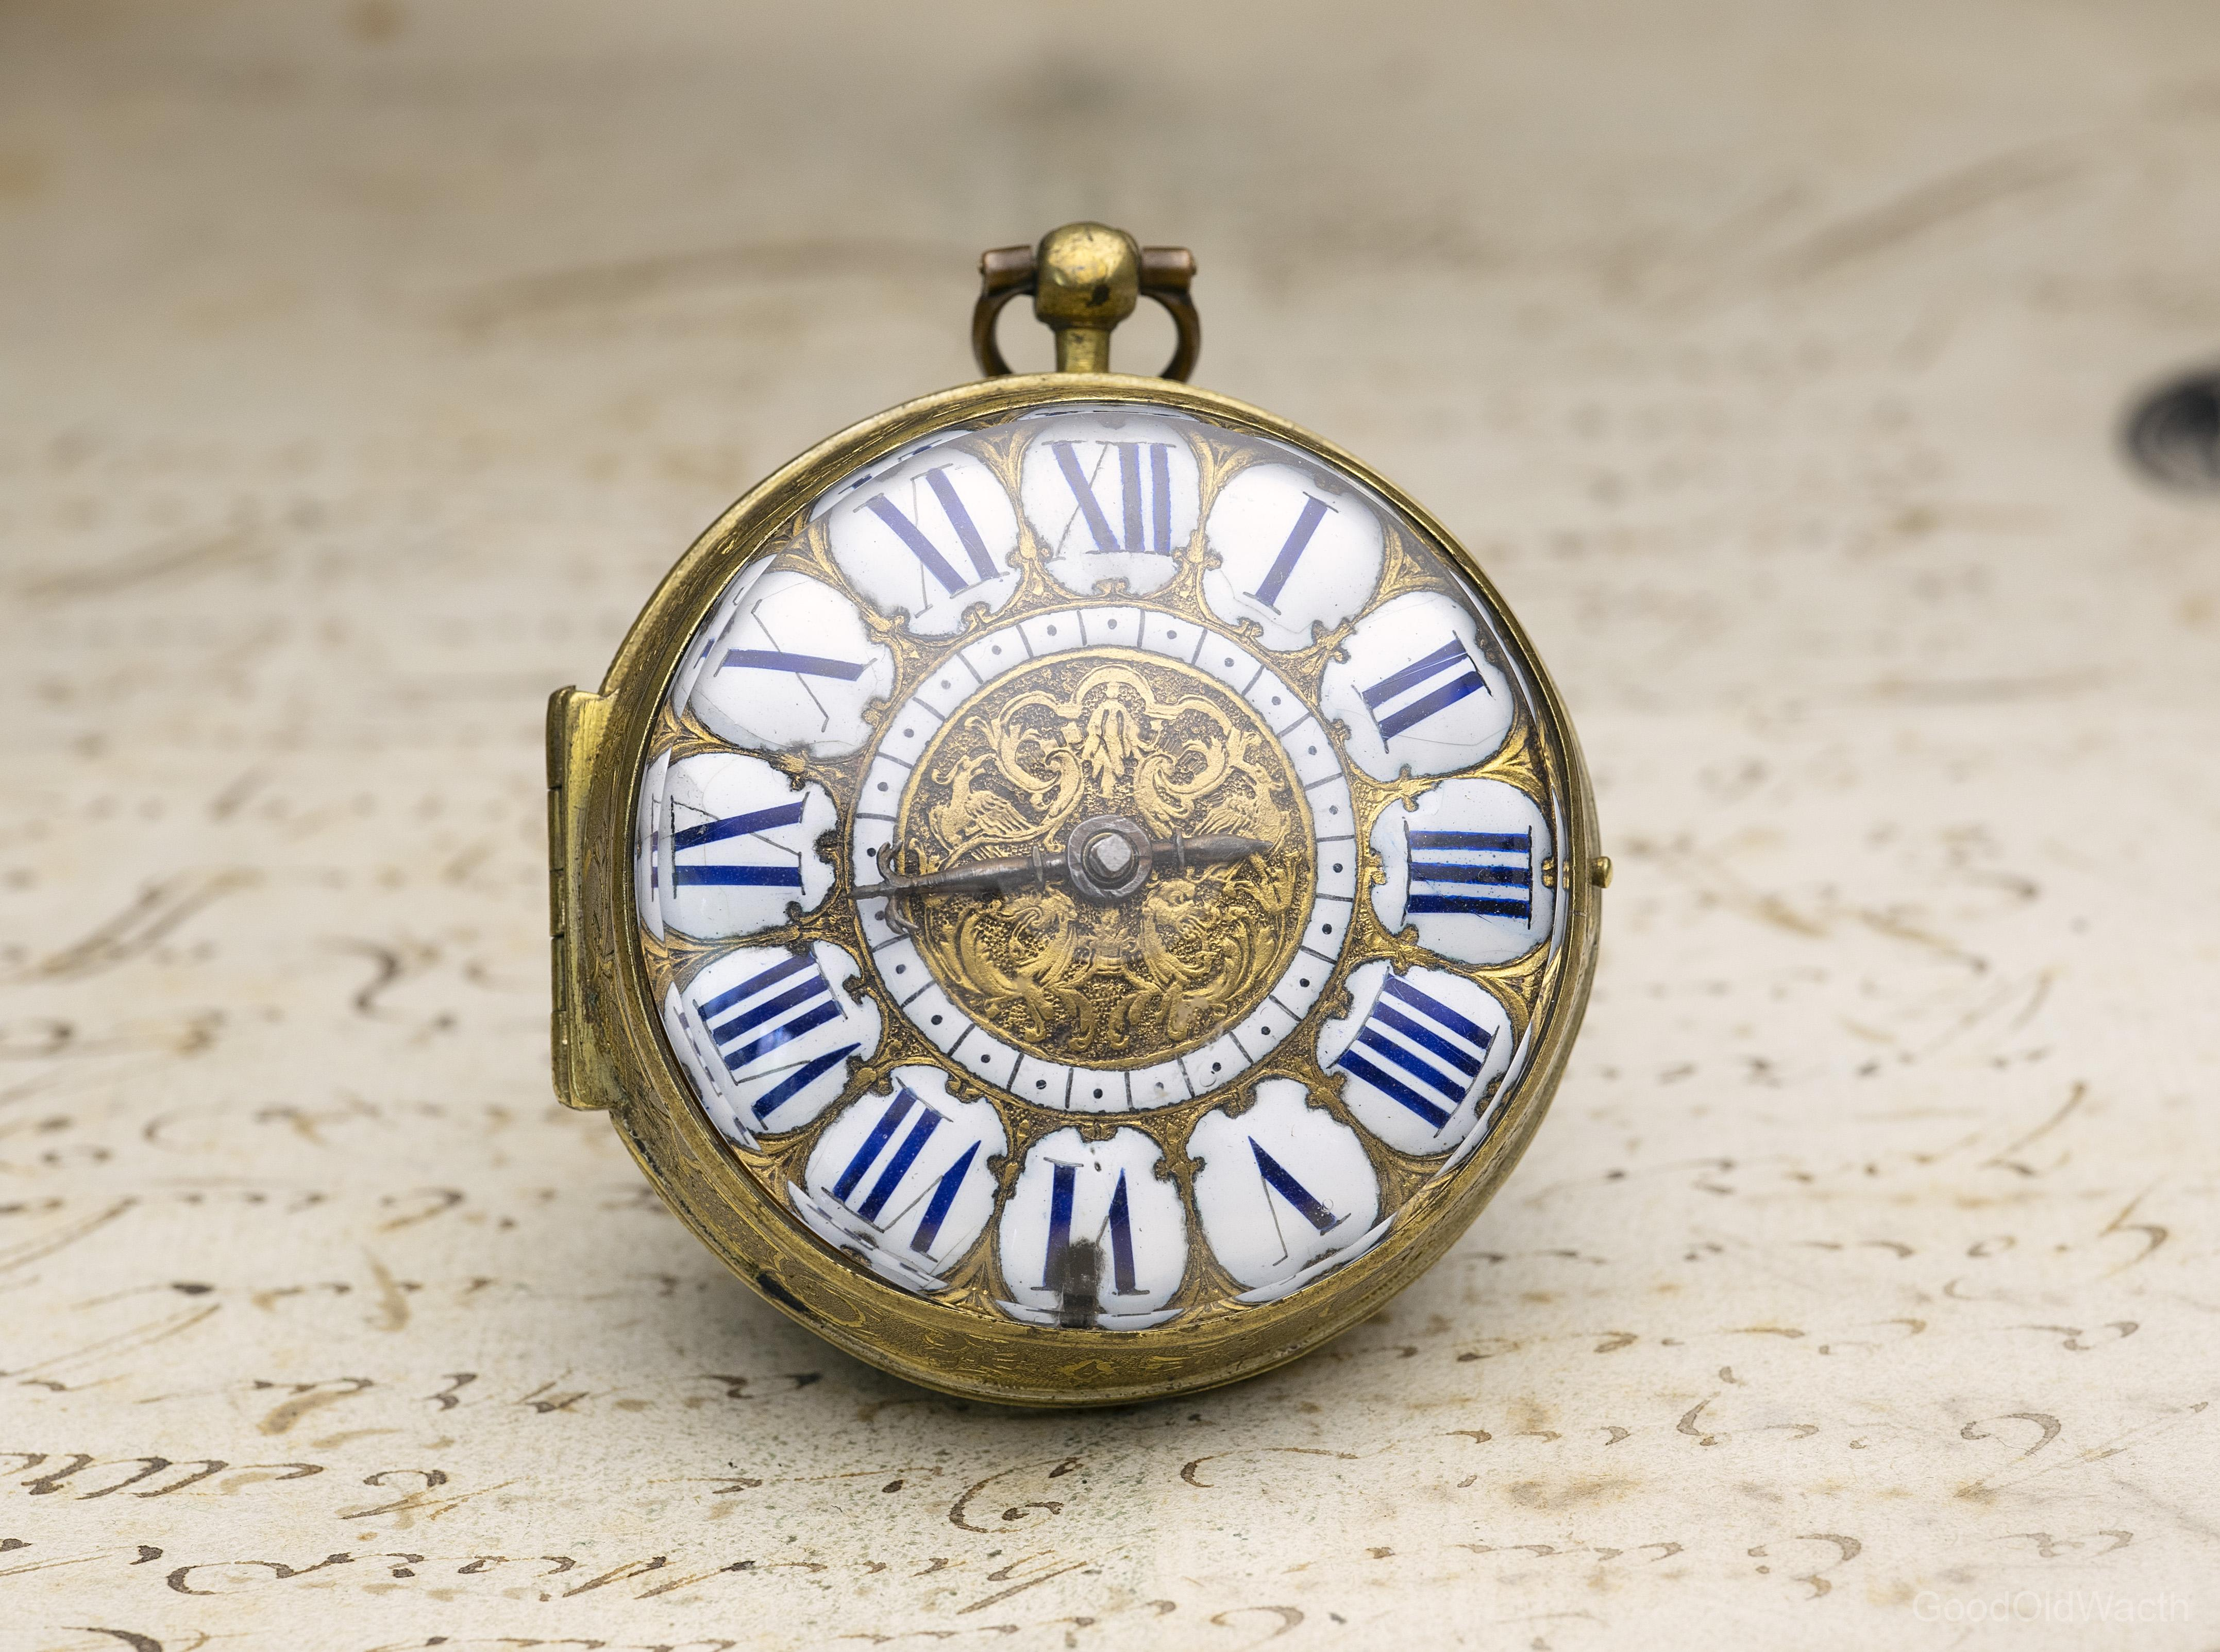 1690s LOUIS XIV OIGNON Verge Fusee Antique Pocket Watch MONTRE COQ by DuChesne in Paris